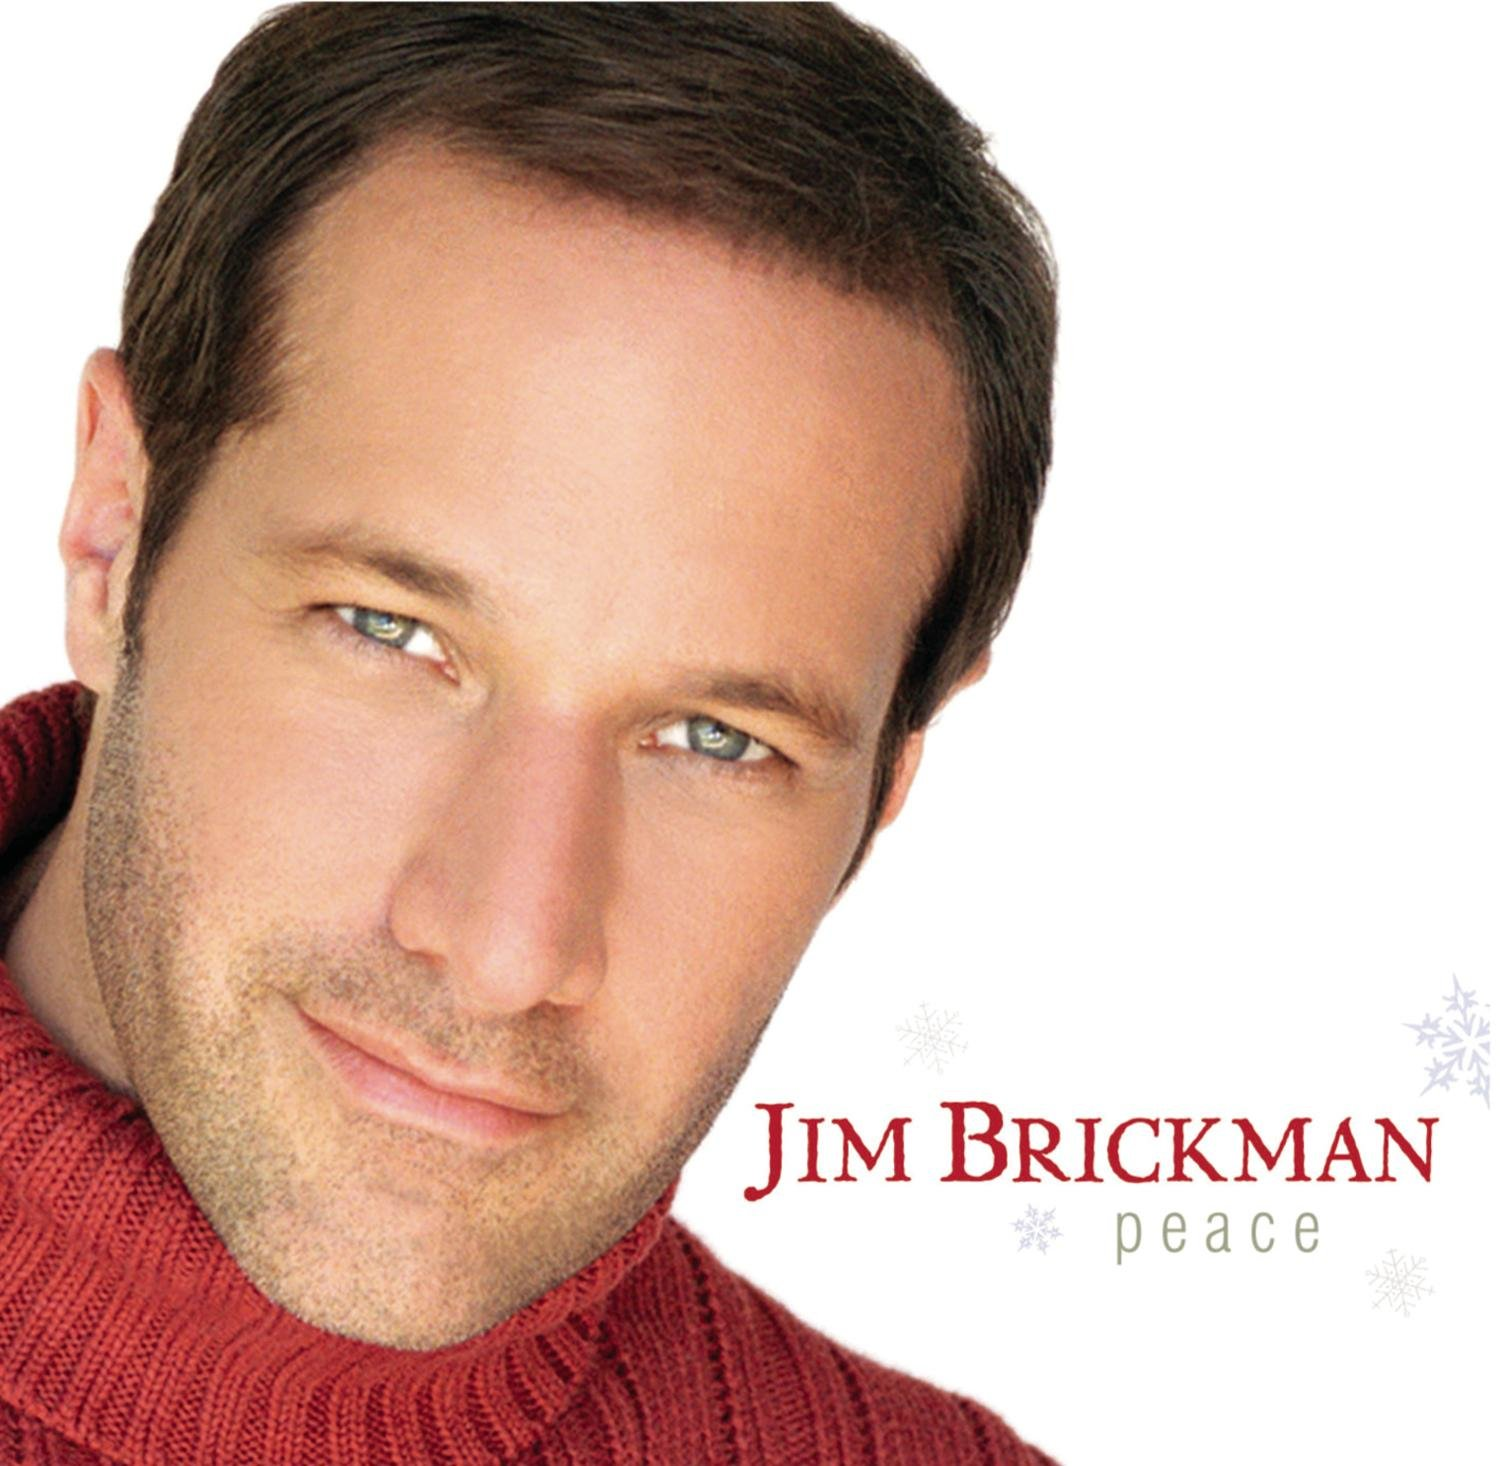 Jim Brickman - Peace - Amazon.com Music